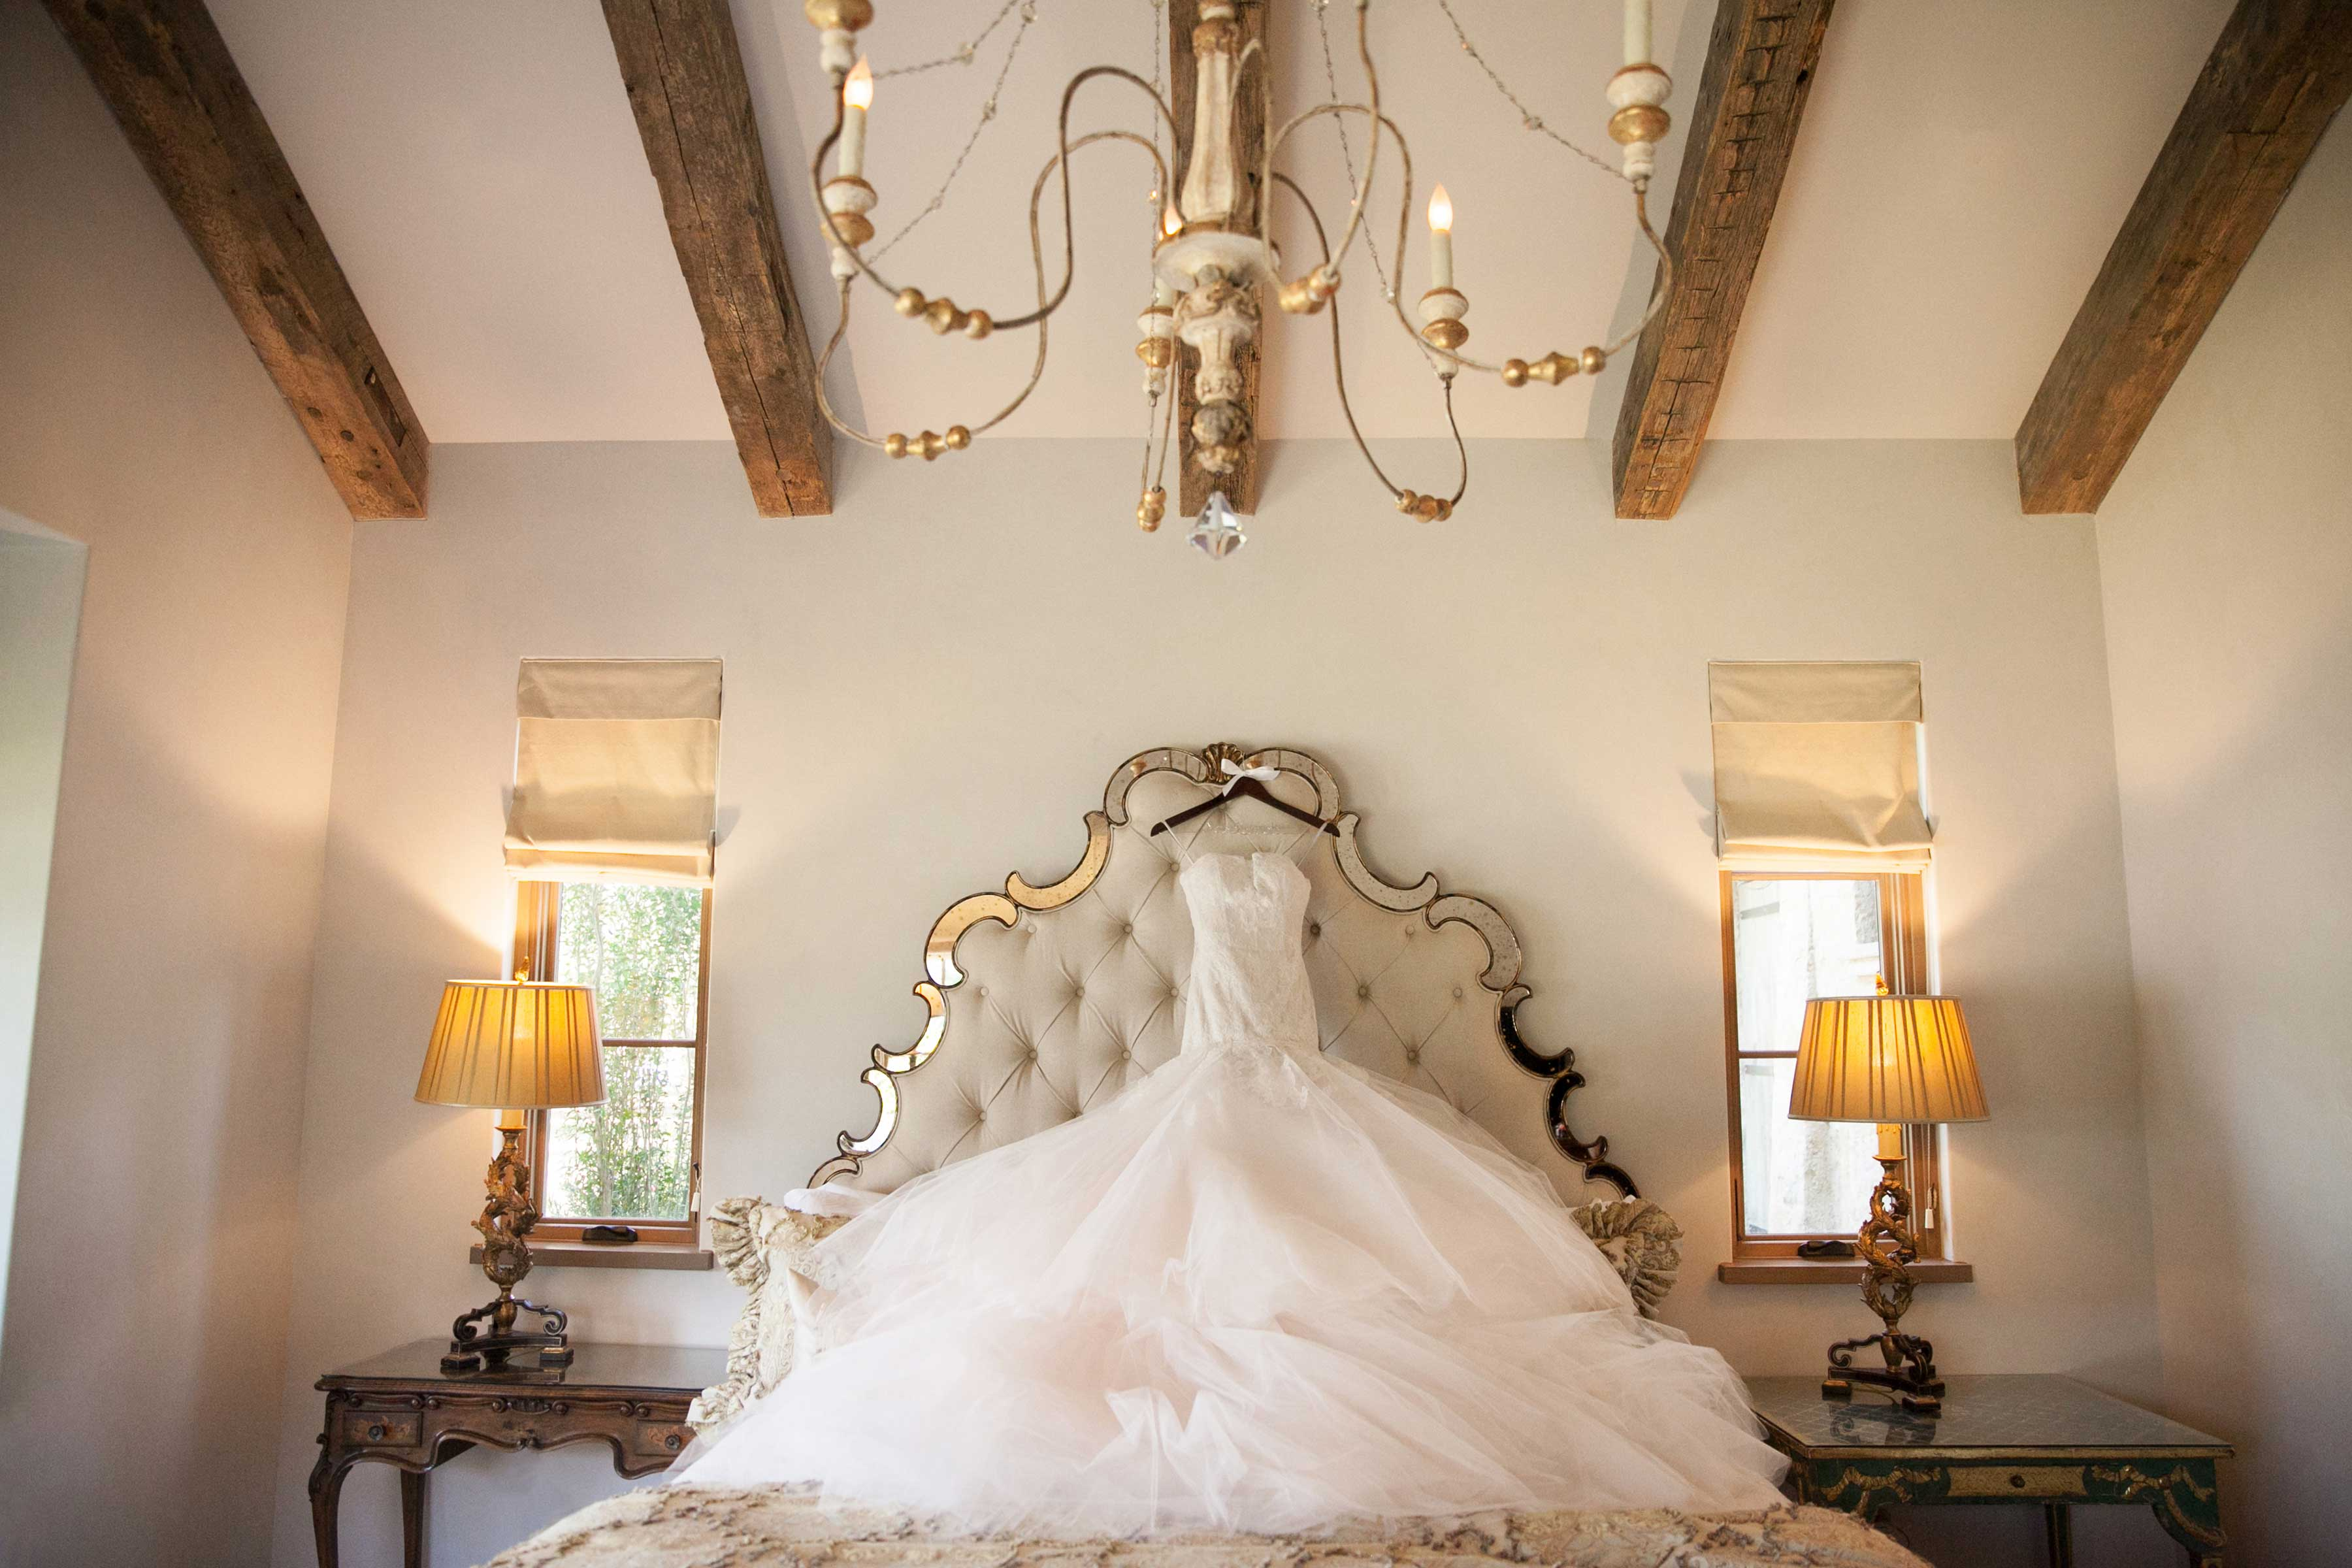 Do's And Don'ts Of Finding Your Wedding Dress